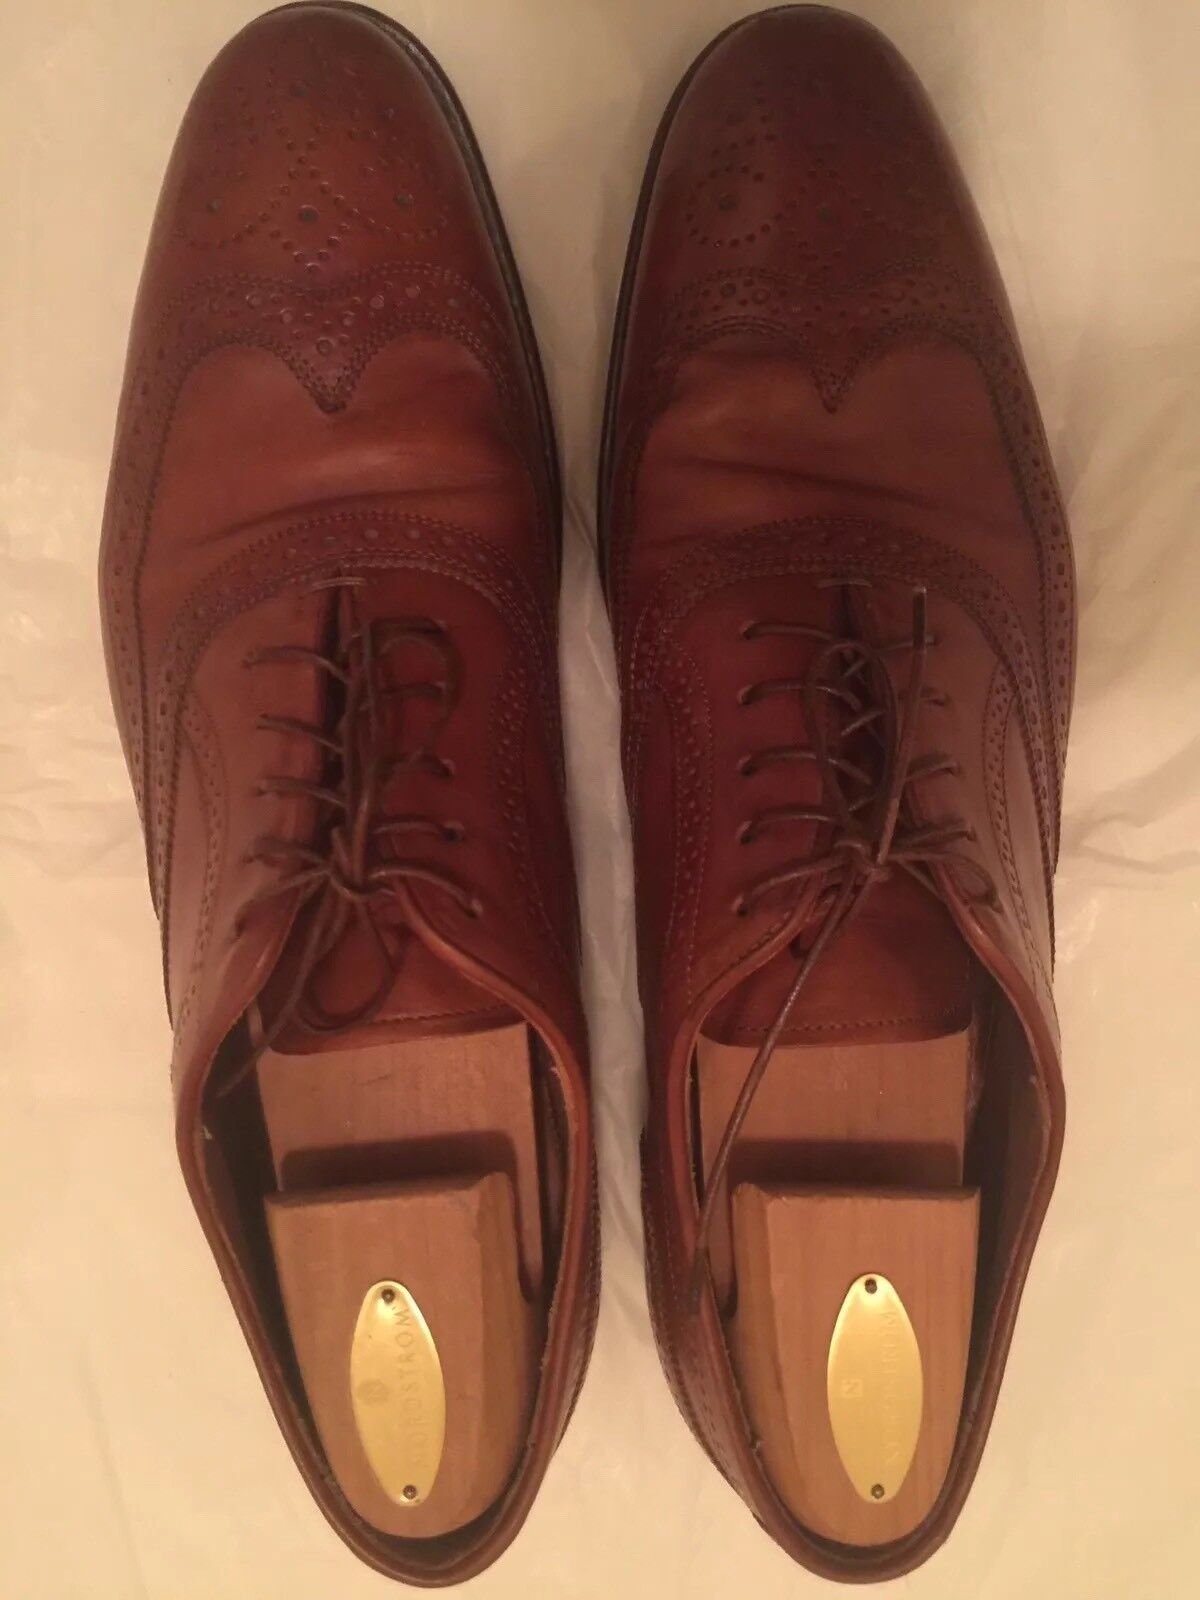 FACONNABLE CALF Wingtip Brown Dress Shoes  Size 12 12 Size Made in Italy Good Condition 49defc